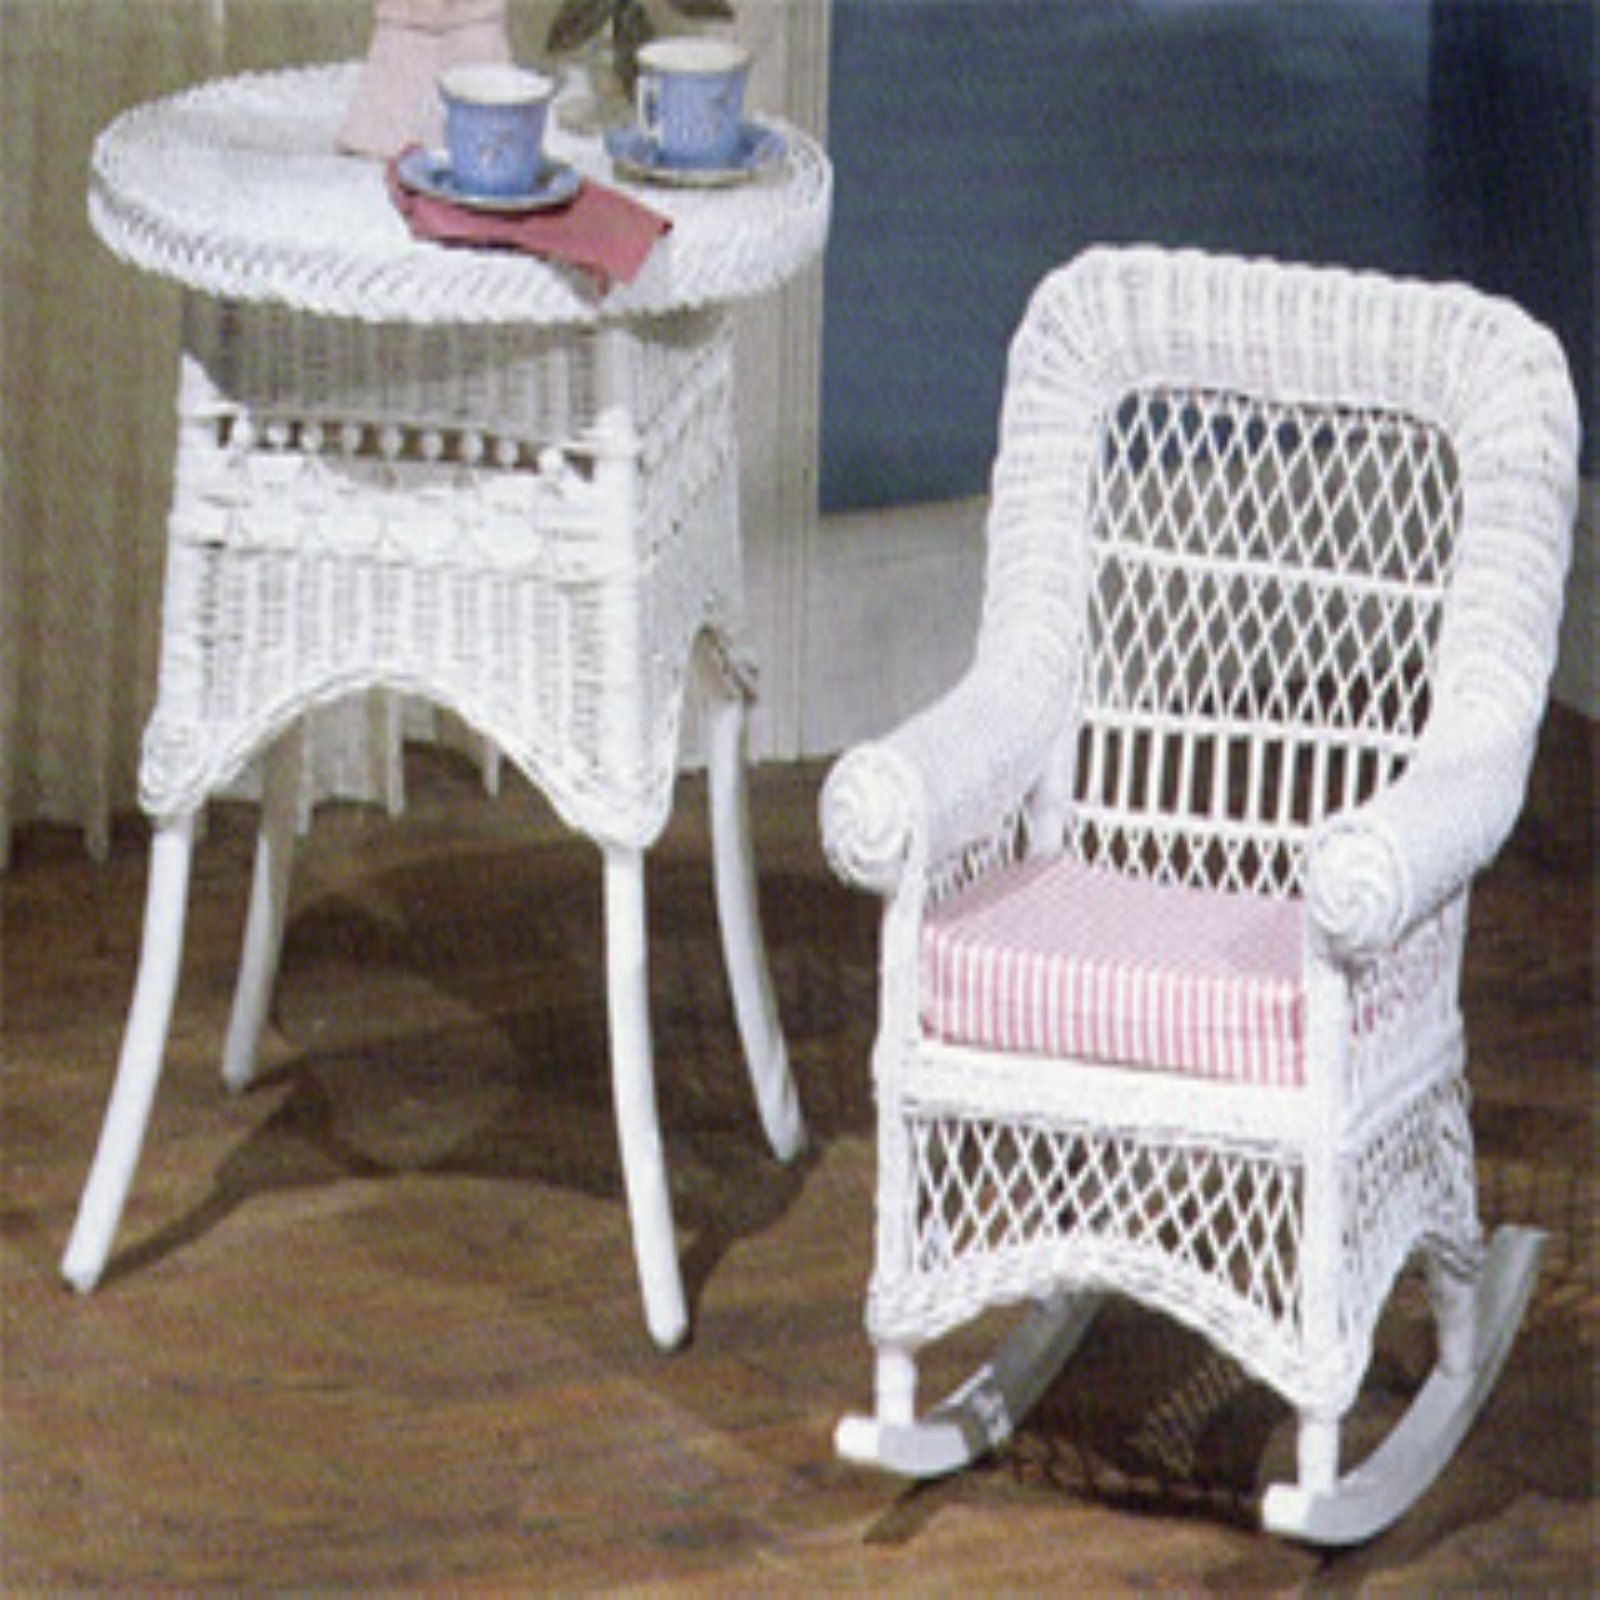 Yesteryear Wicker Childs Wicker Rocking Chair with Cushion by Yesteryear Wicker